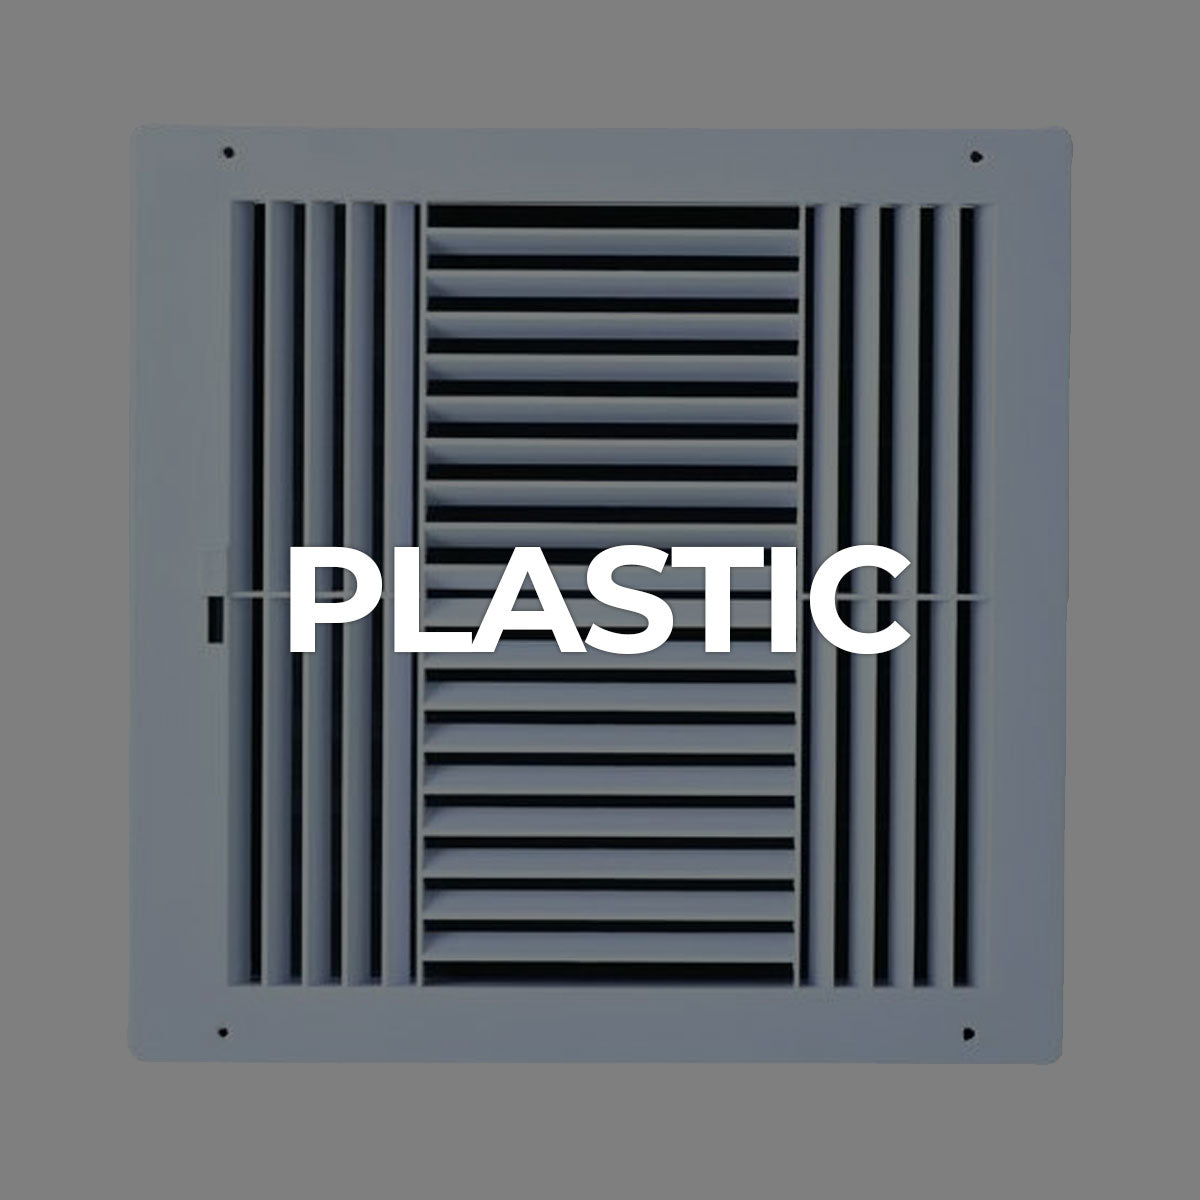 Supply / Plastic